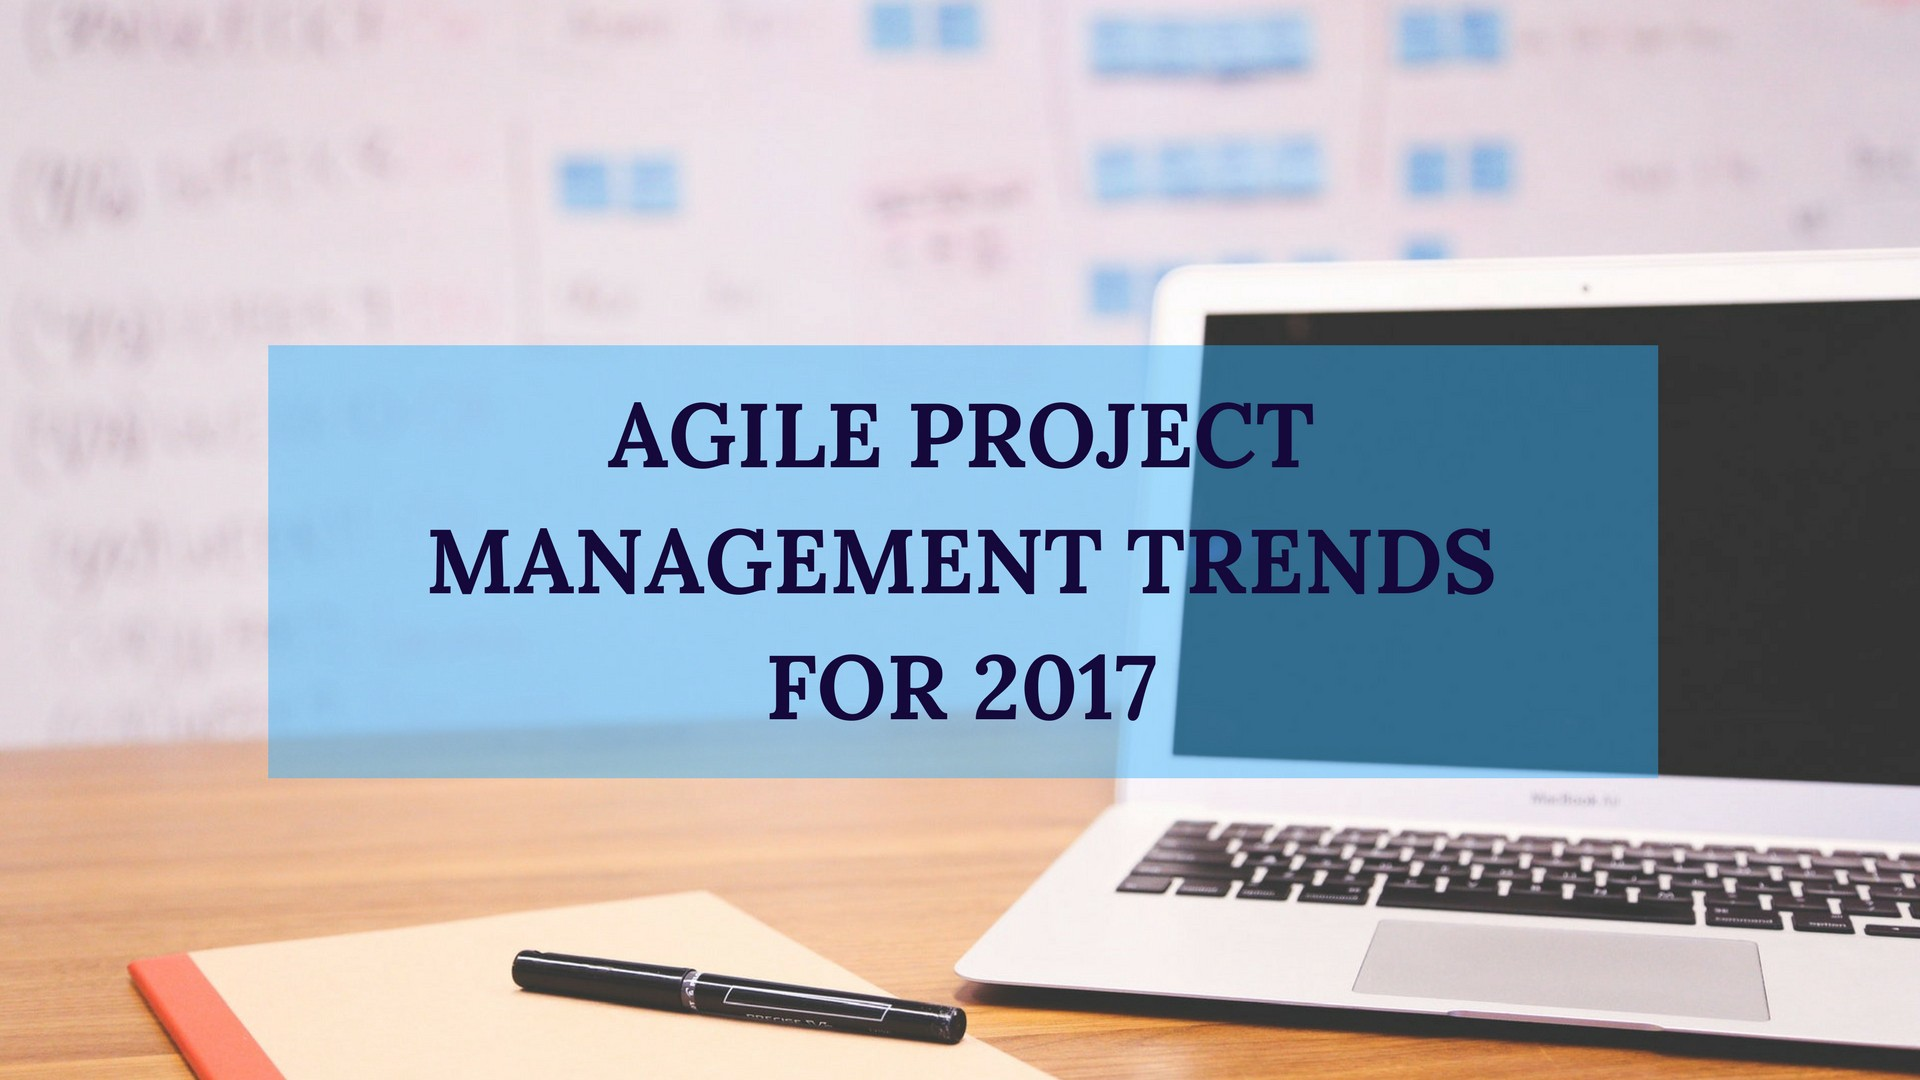 Agile Project Management Trends for 2017